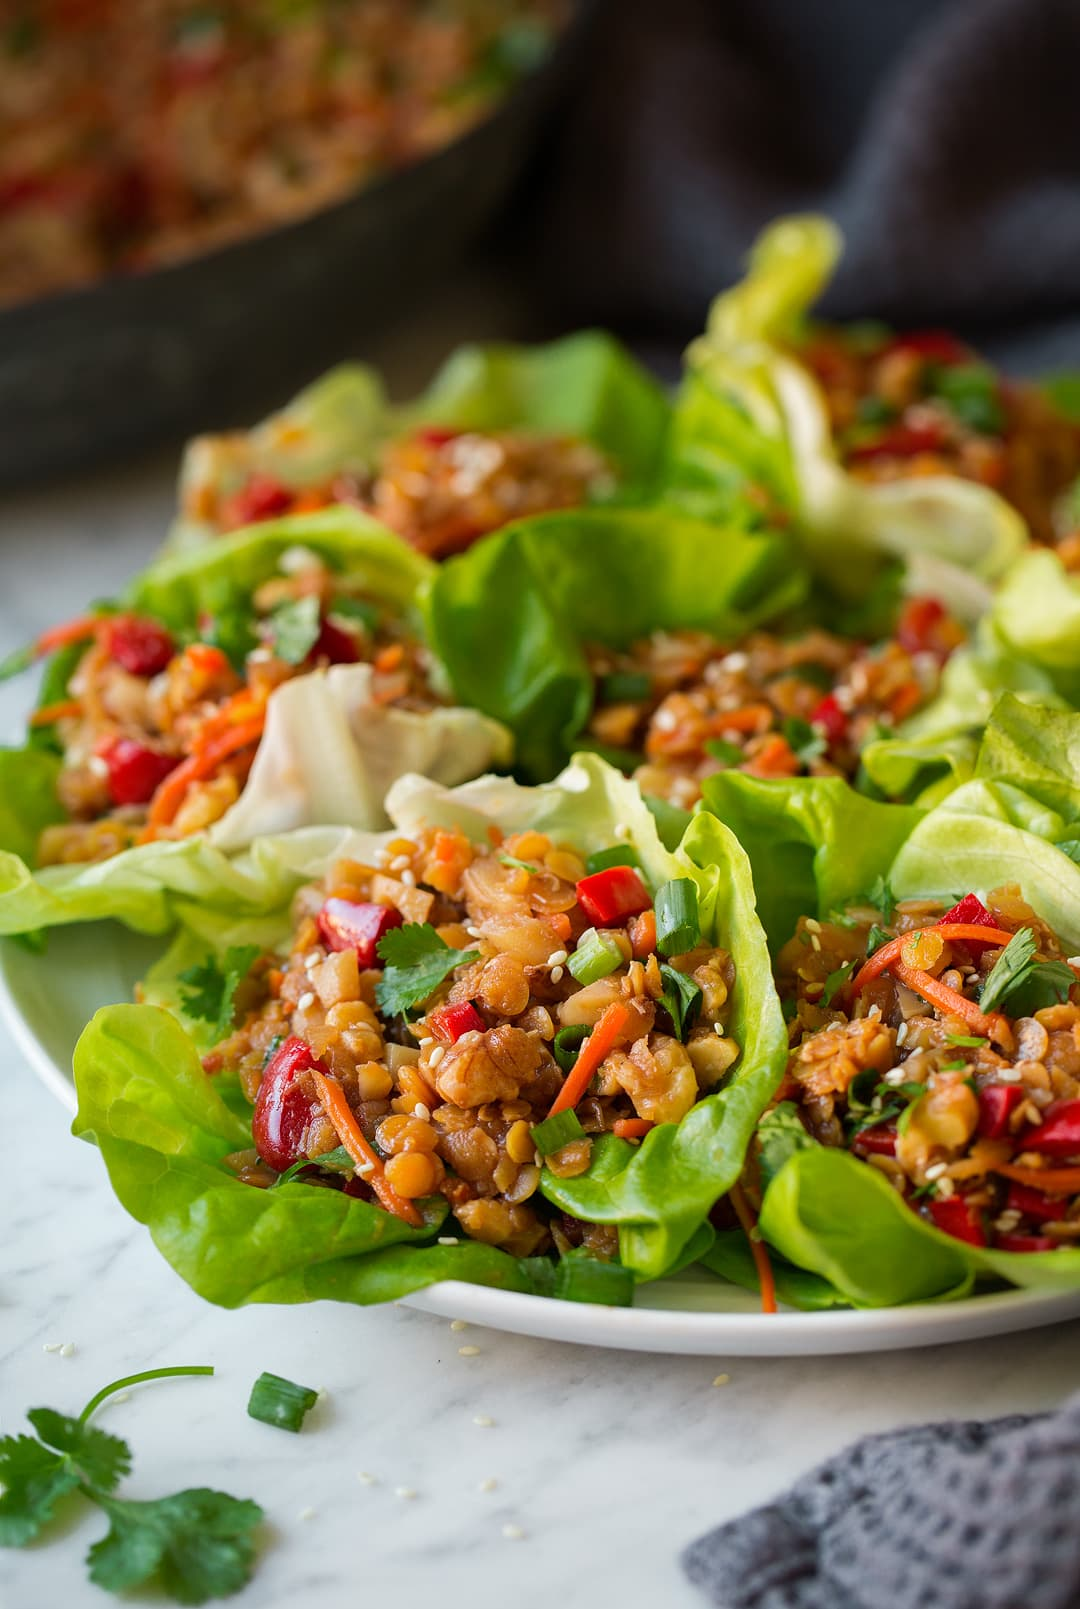 Lettuce Wraps with Lentils